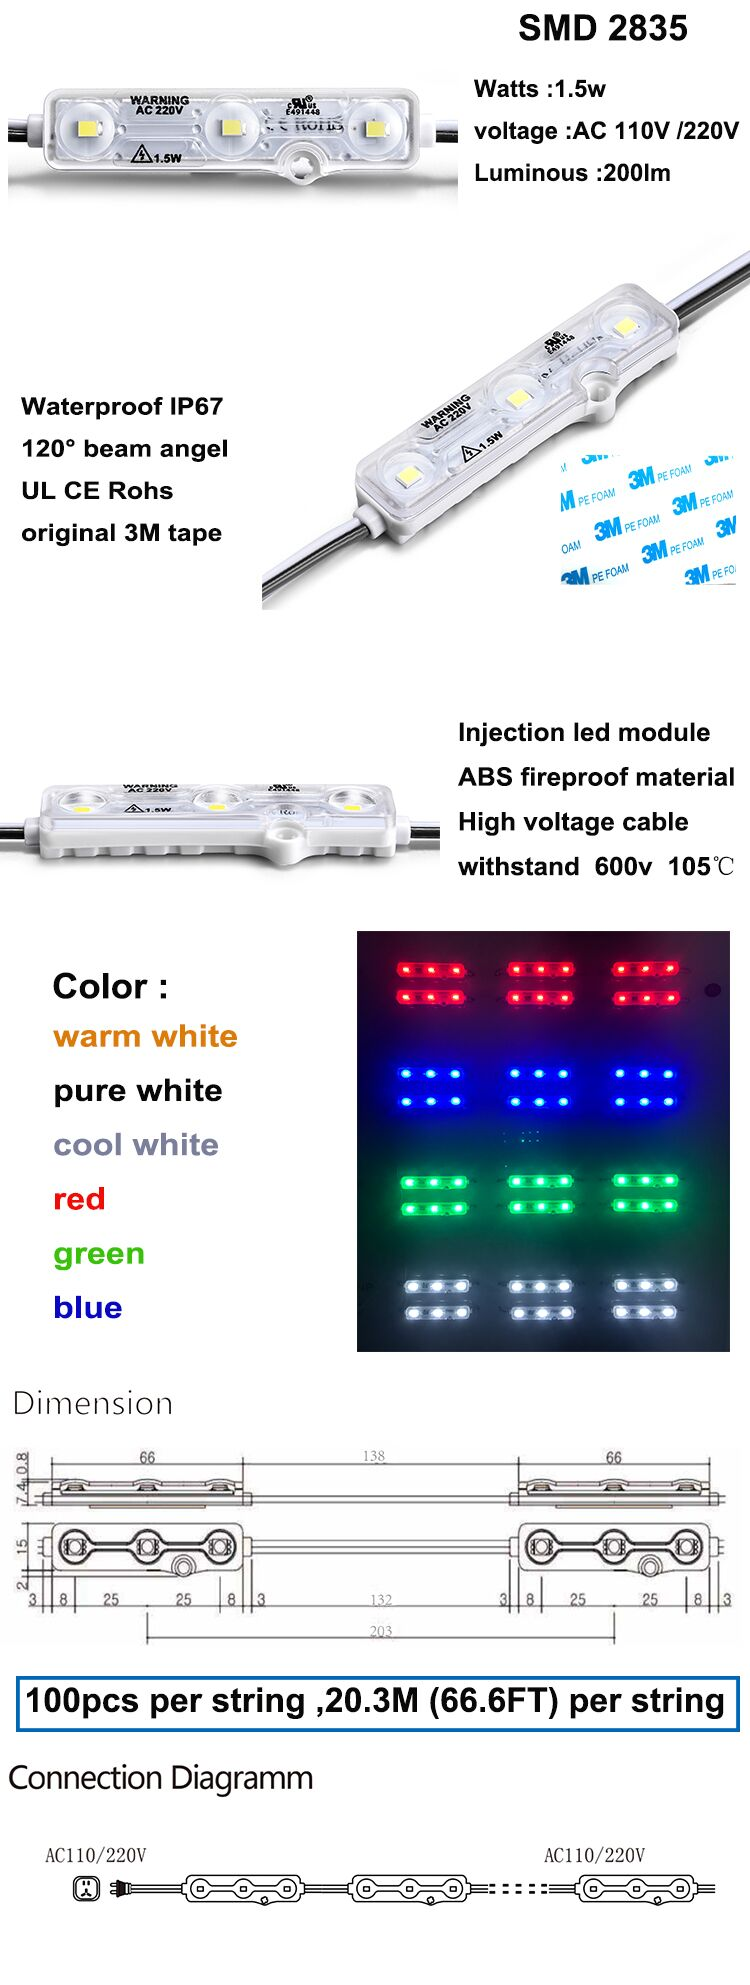 2 years warranty 0.72w 66lm 110v AC/220v 5730 led module high voltage LED MODULE 220V